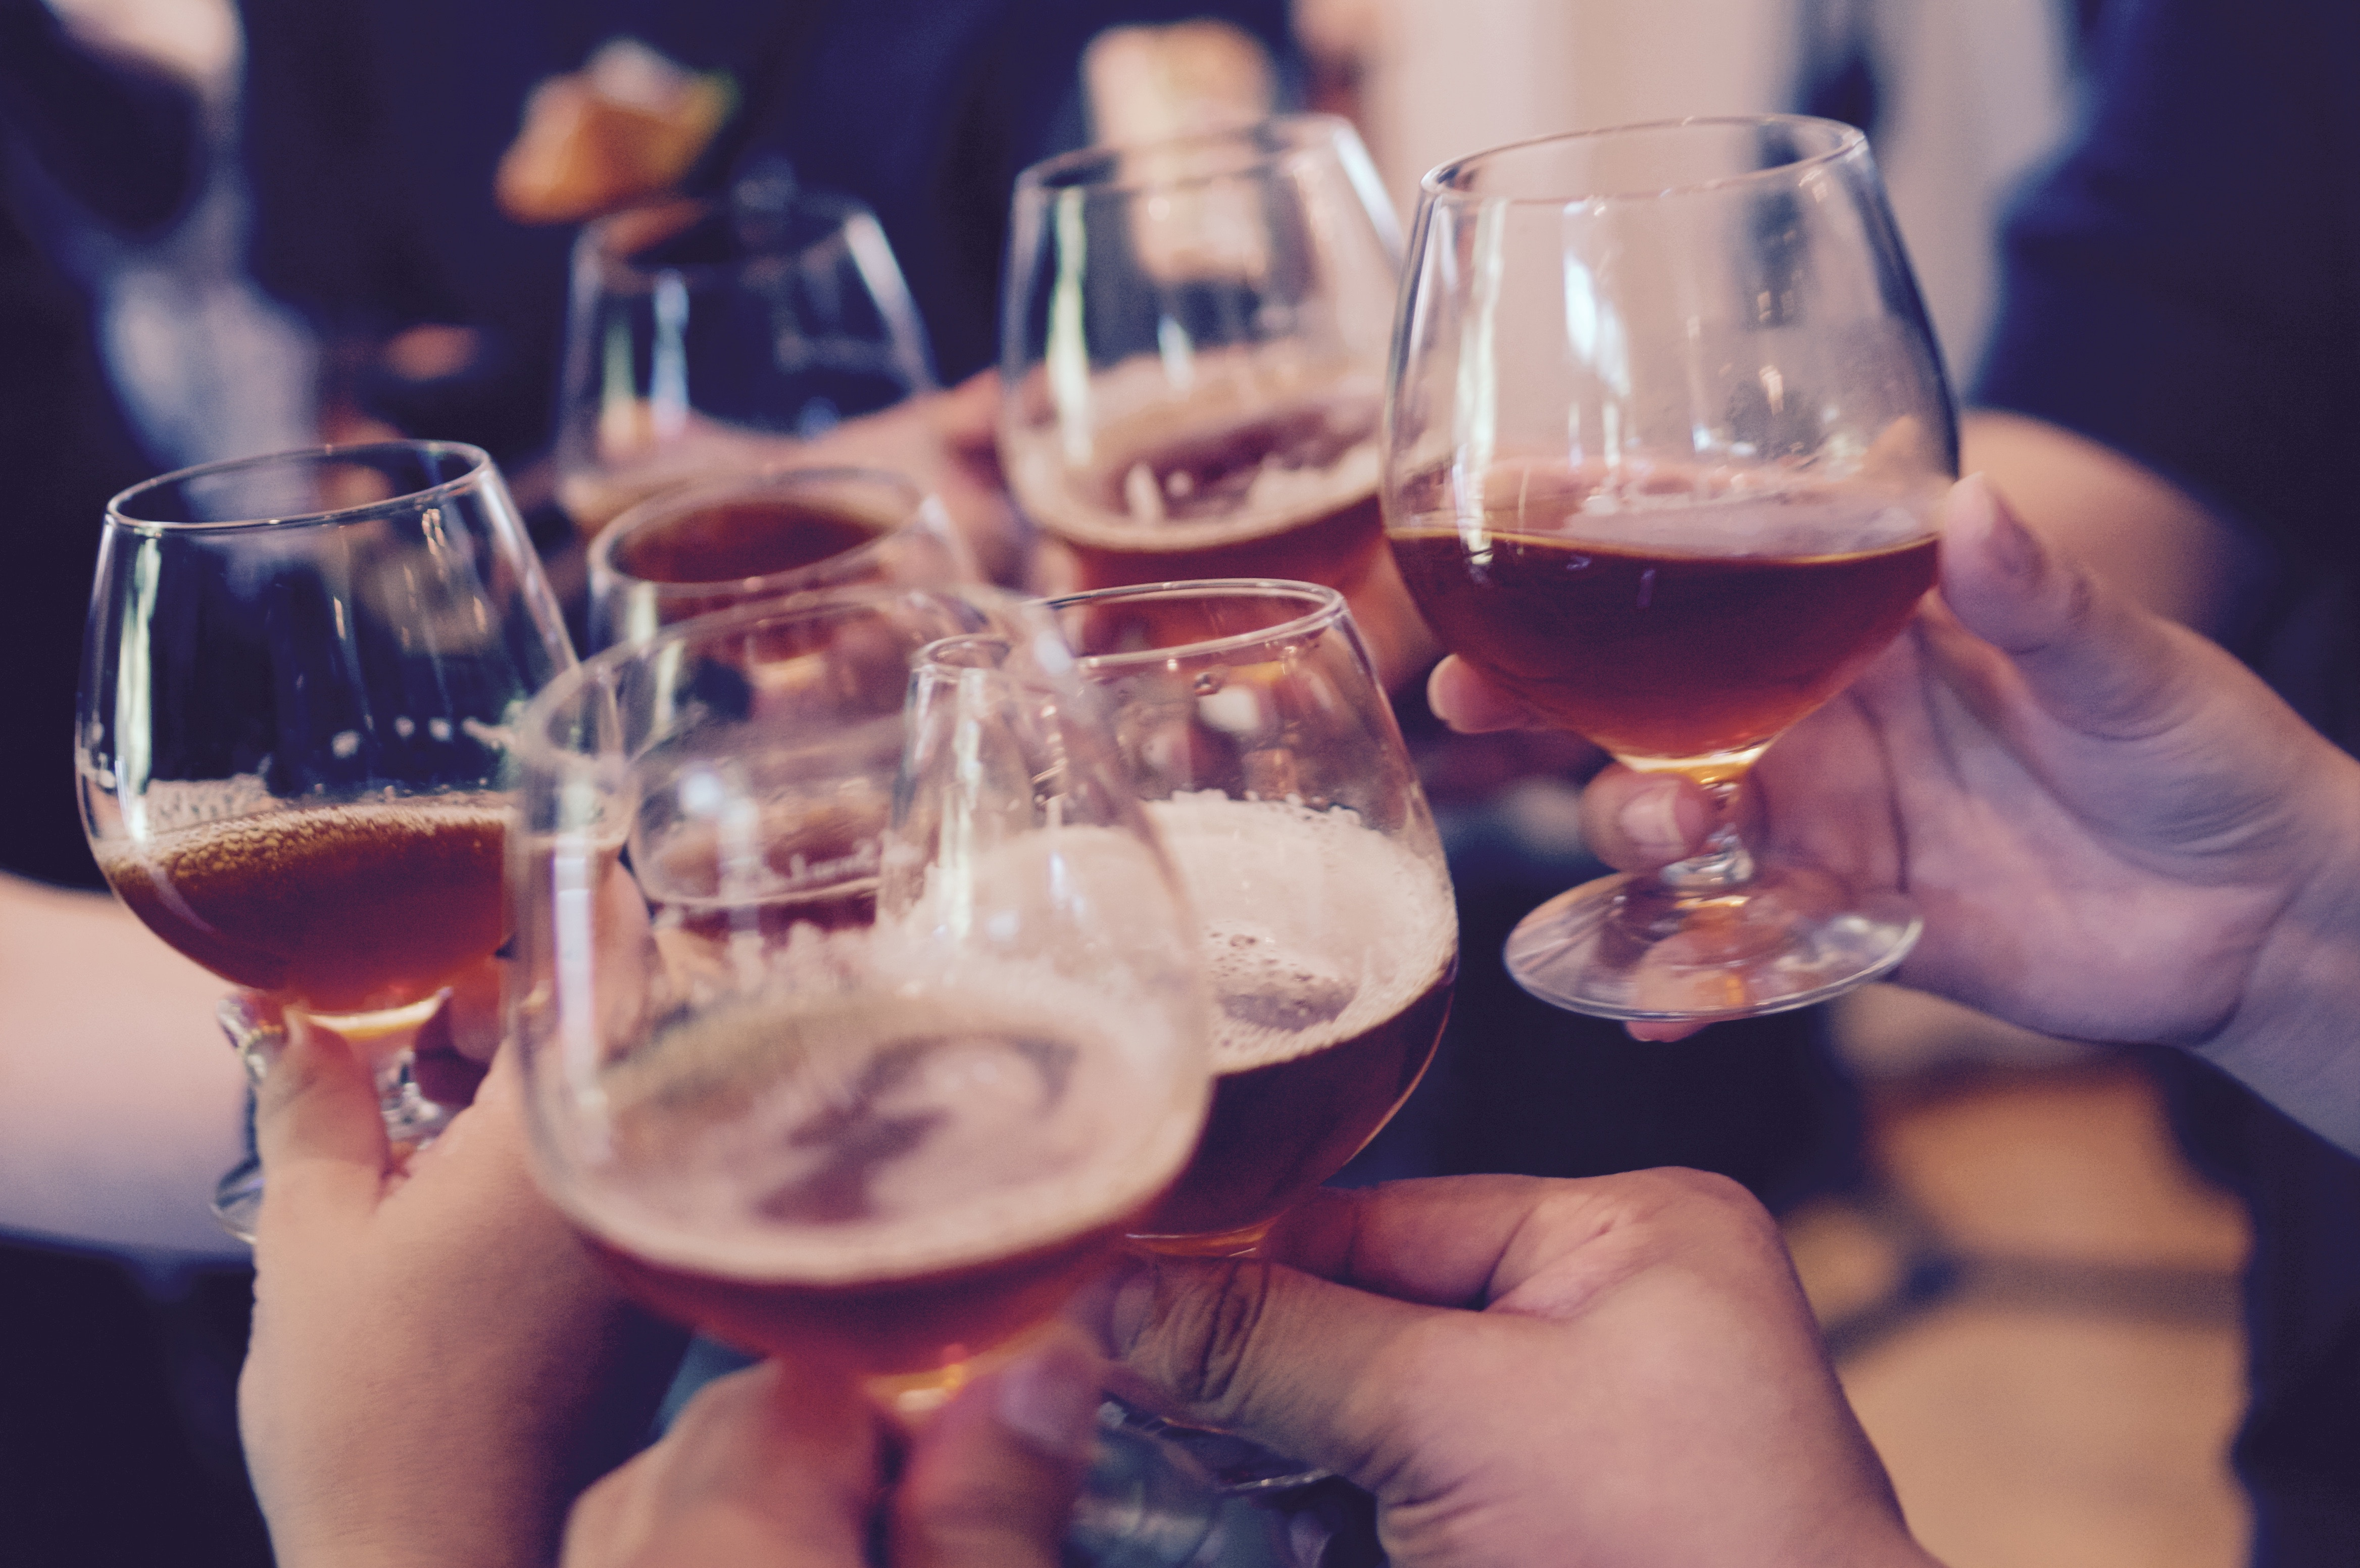 How to bring happy hour to nonprofit work